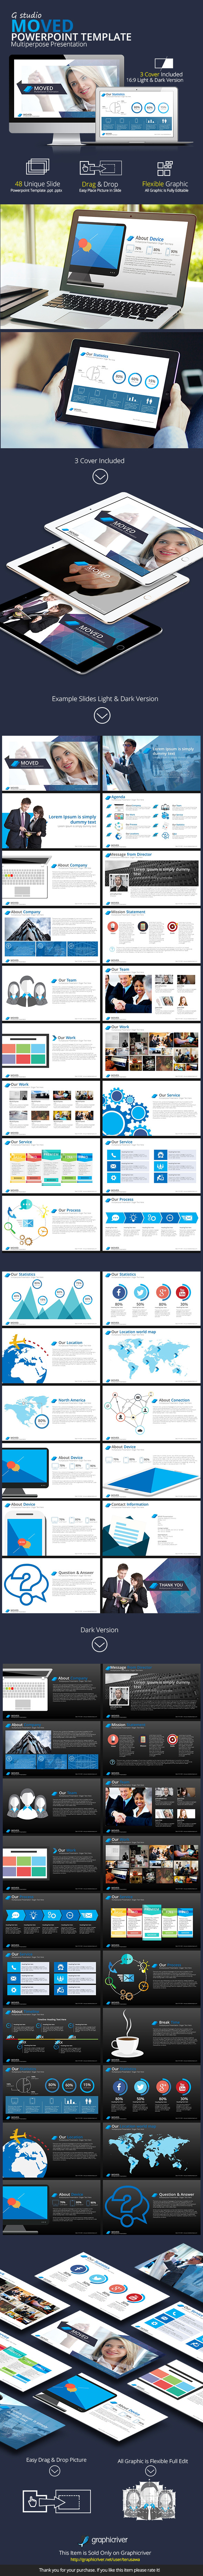 GraphicRiver Moved Powerpoint Template 9227233